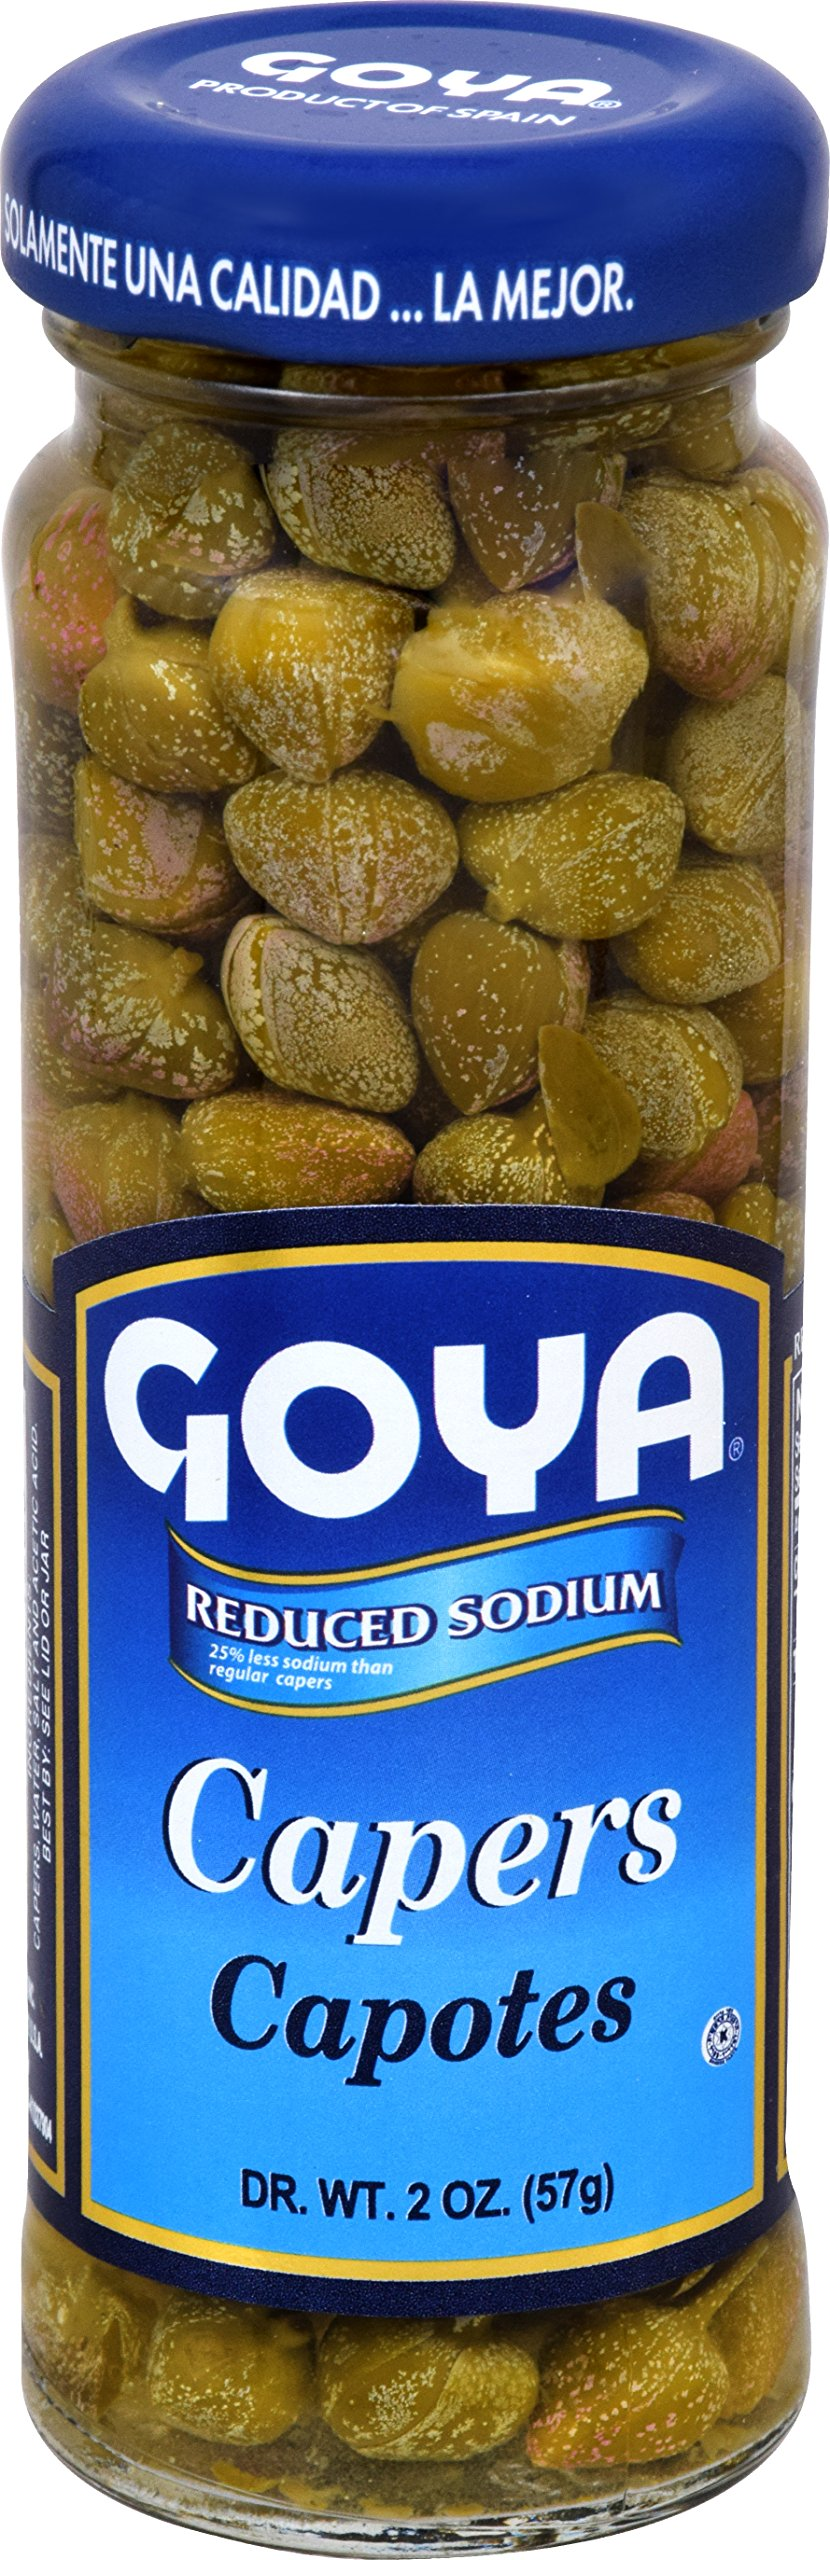 Goya Foods Reduced Sodium Capers, 2 Ounce (Pack of 12)